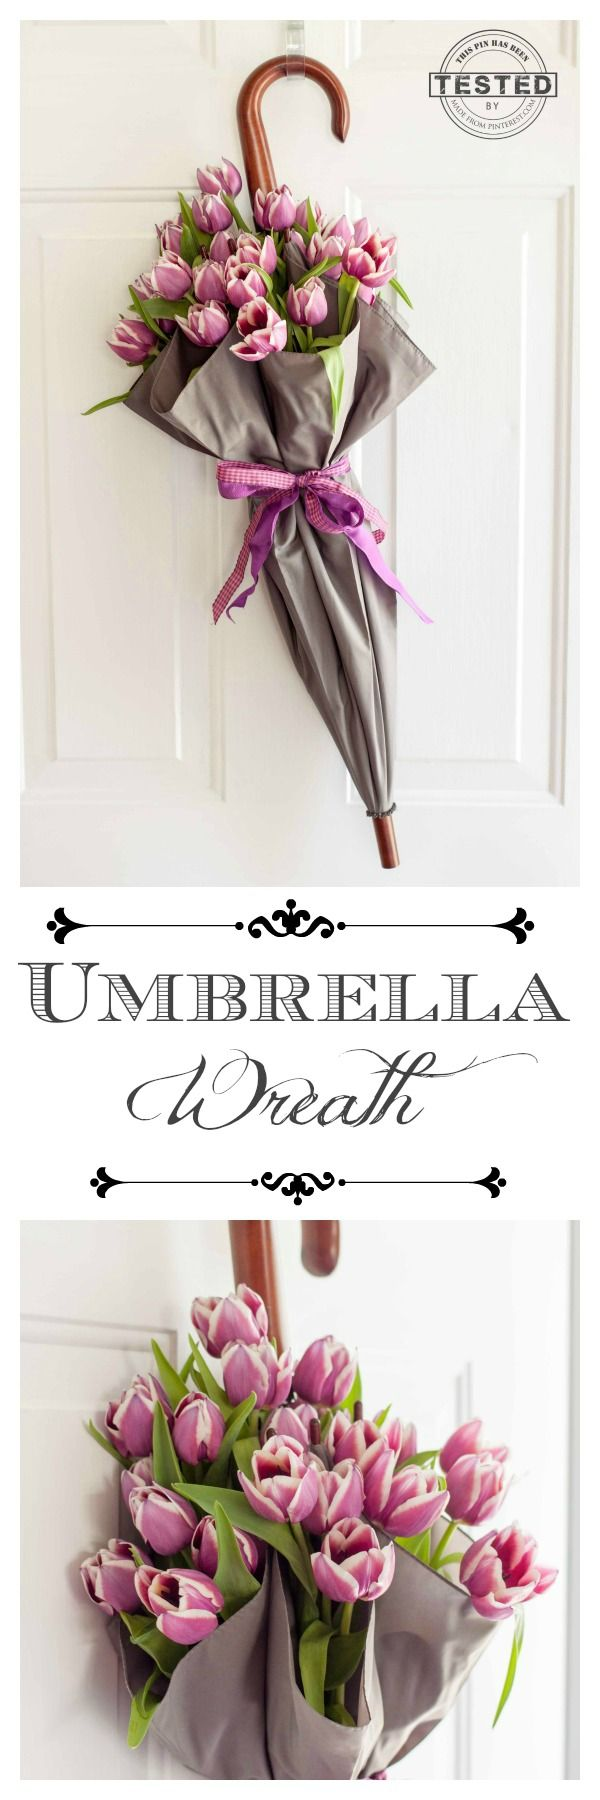 DIY Umbrella Wreath